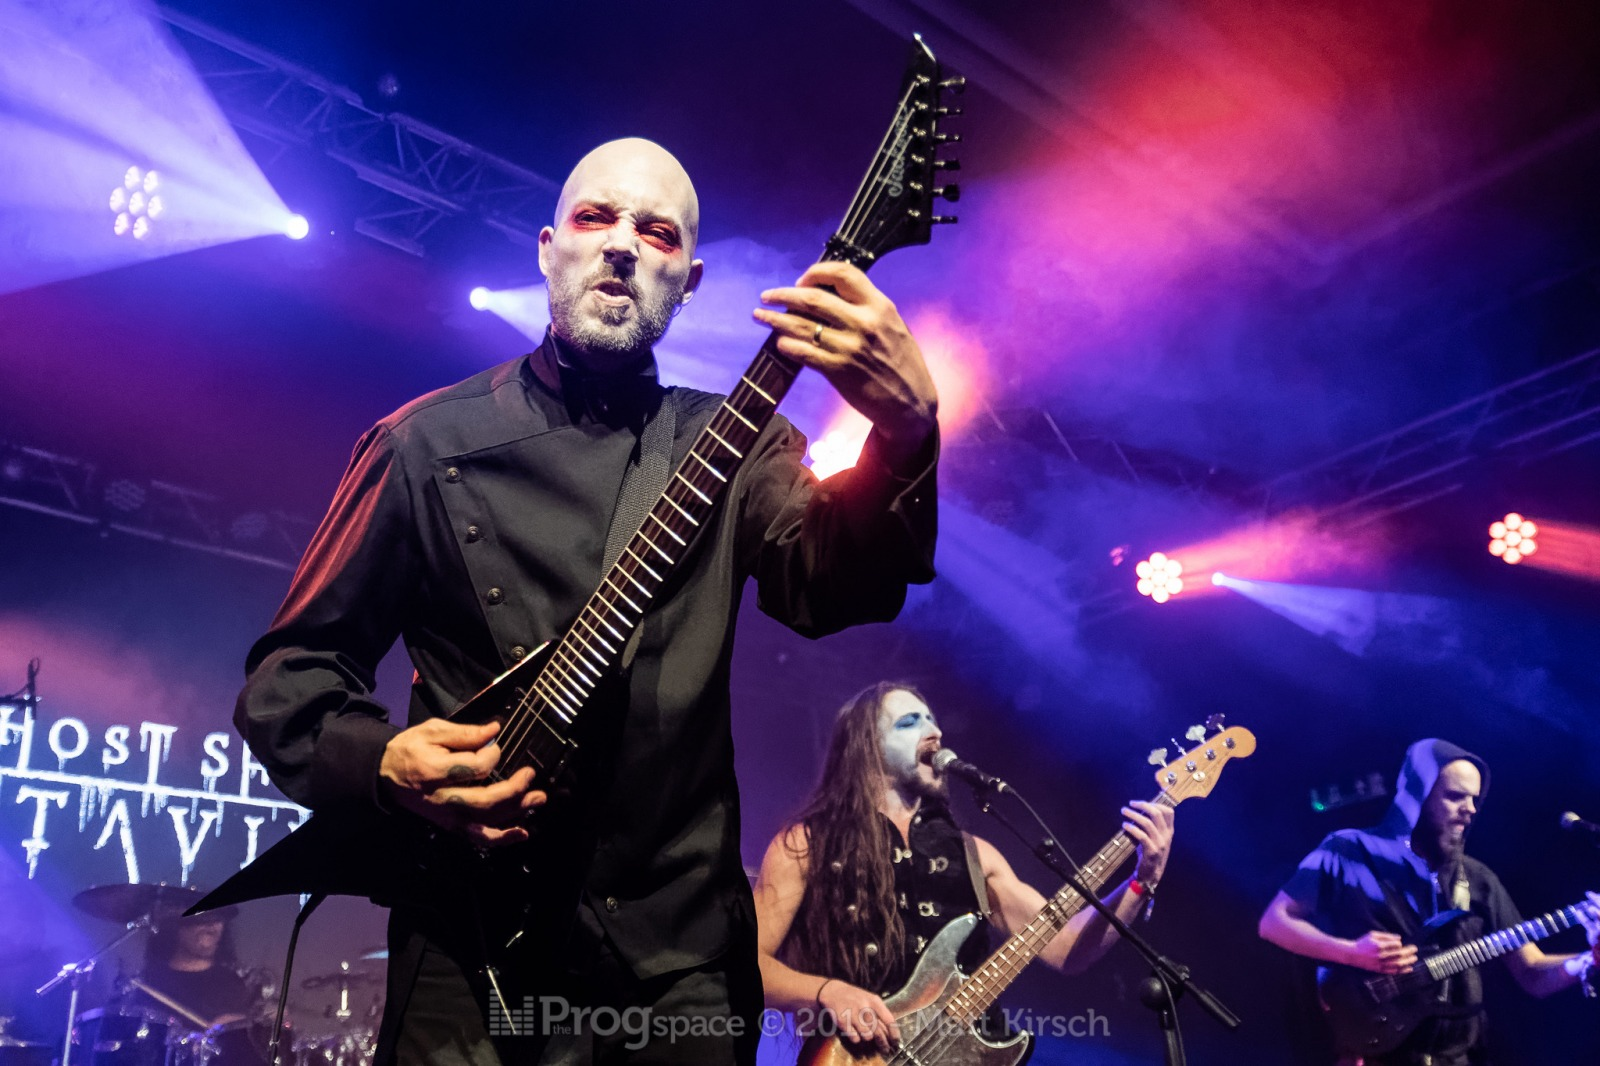 Progpower Europe 2019: Ghost Ship Octavius